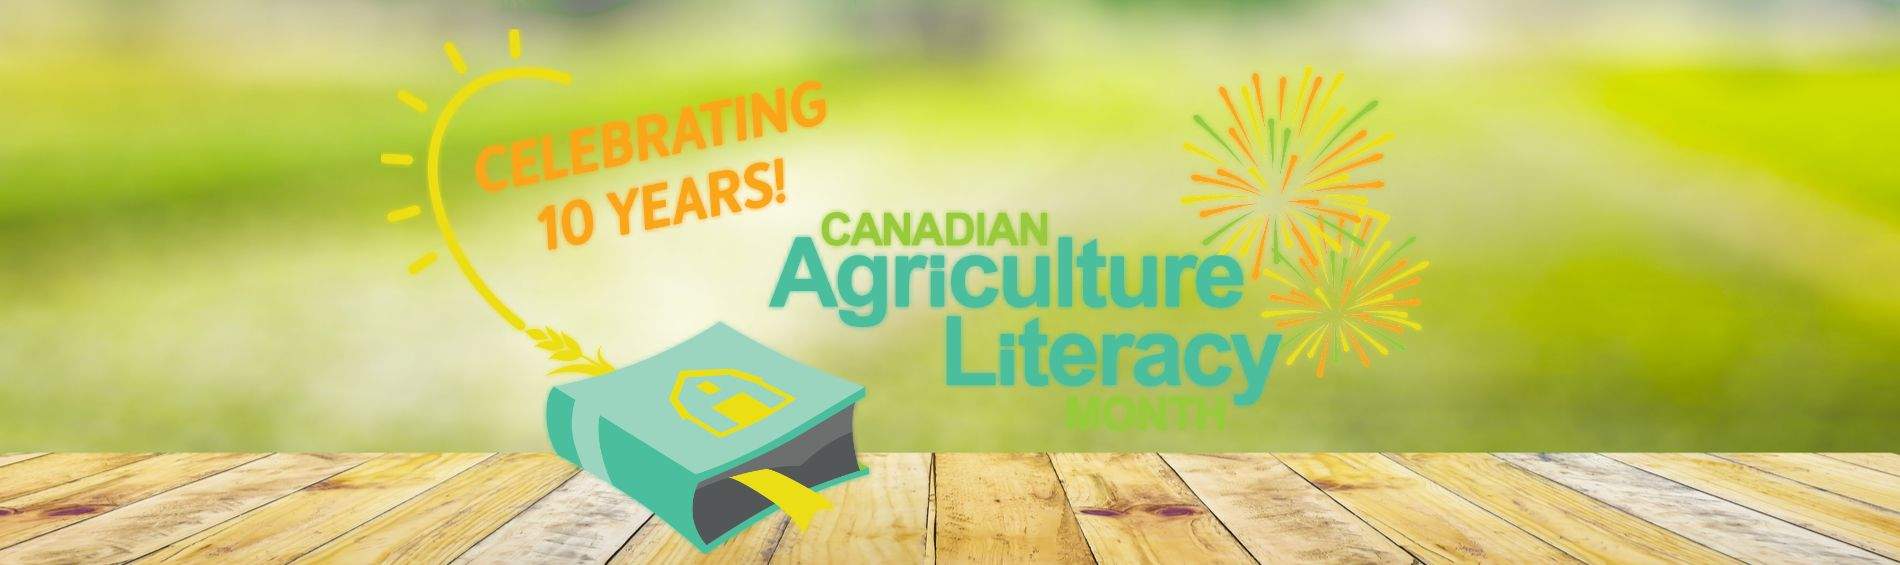 Canadian Agriculture Literacy Month 2021